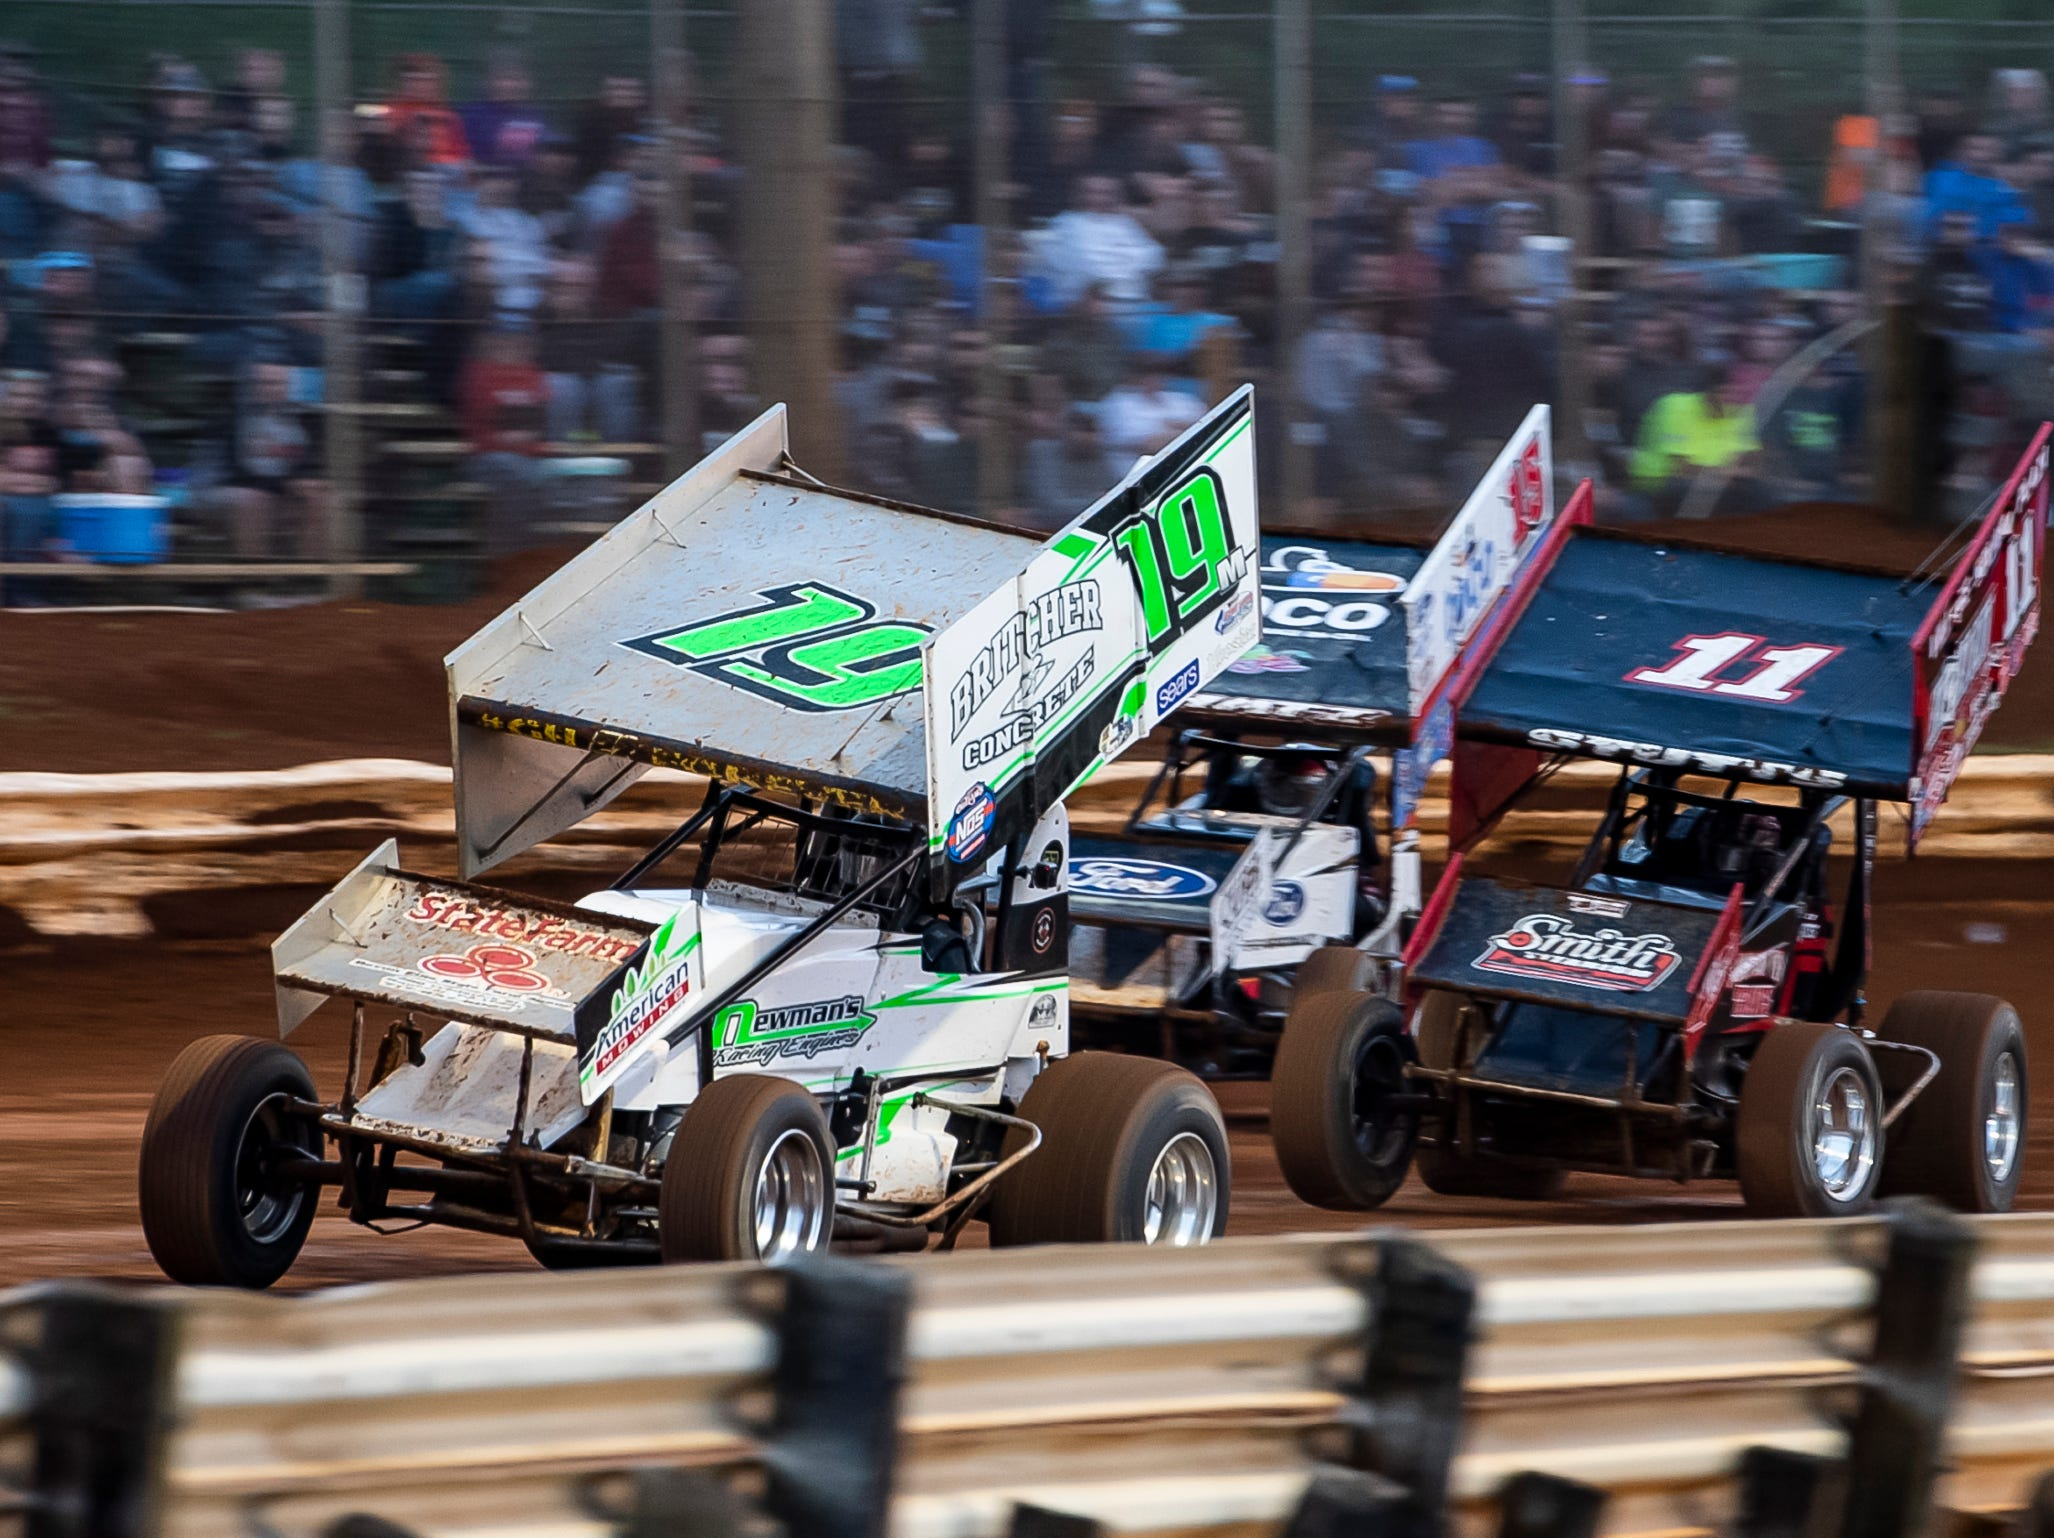 Cars navigate a turn during the World of Outlaws Gettysburg Clash at Lincoln Speedway in Abbottstown on Wednesday, May 15, 2019.